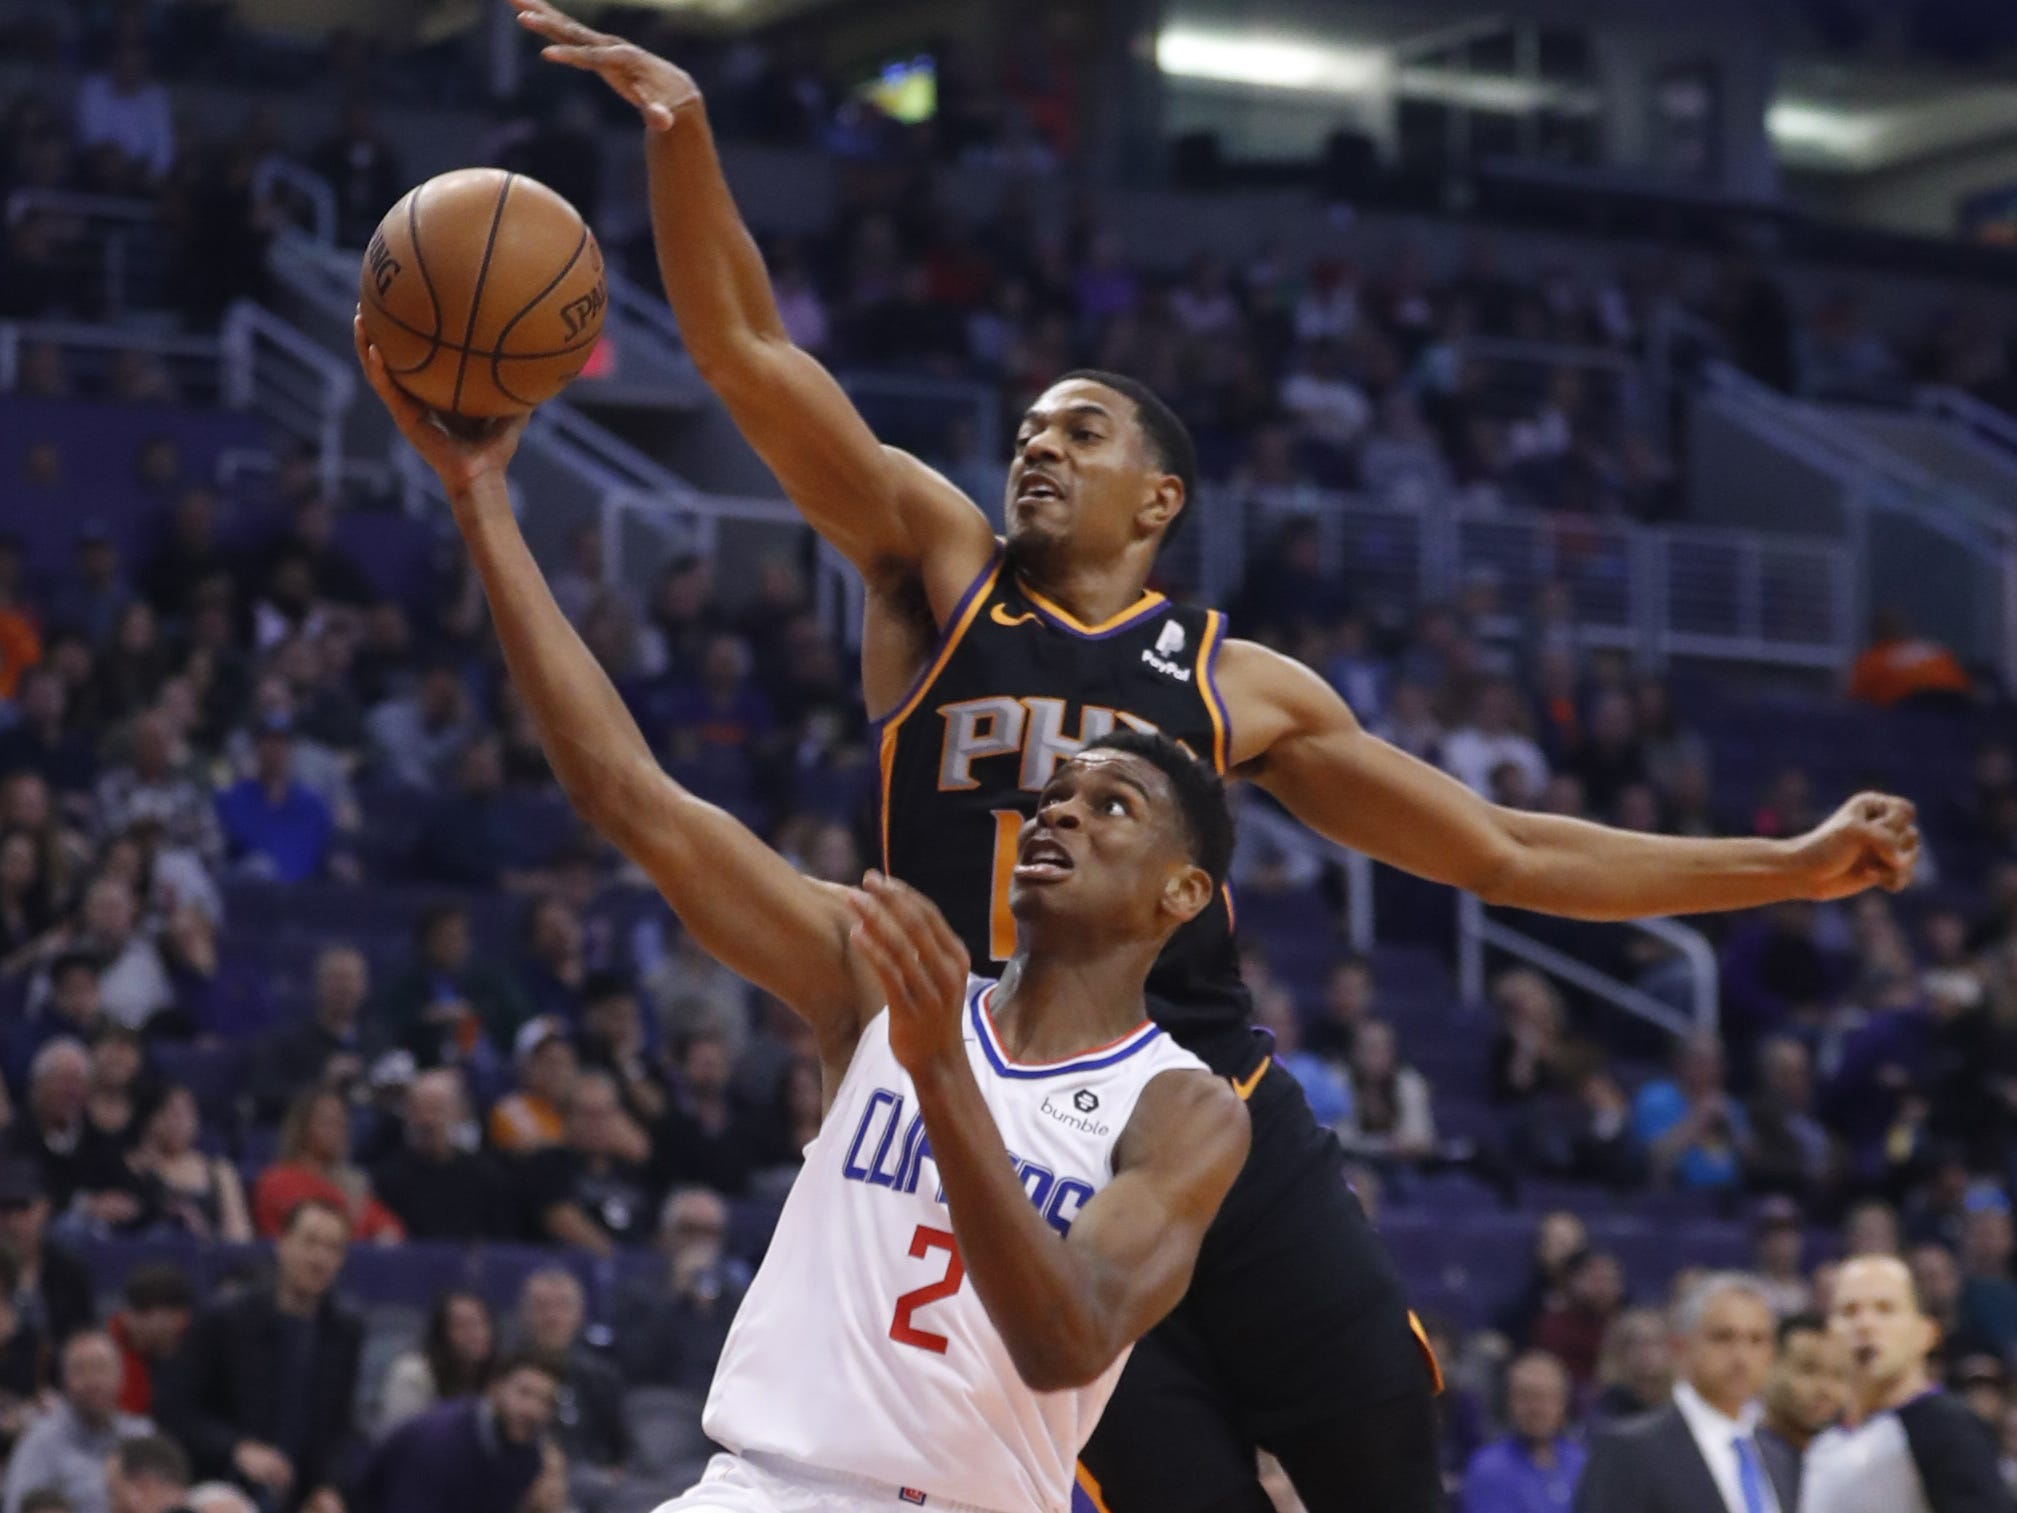 Suns' De'Anthony Melton (14) blocks Clippers' Shai Gilgeous-Alexander (2) during the second half at Talking Stick Resort Arena in Phoenix, Ariz. on January 4, 2019.